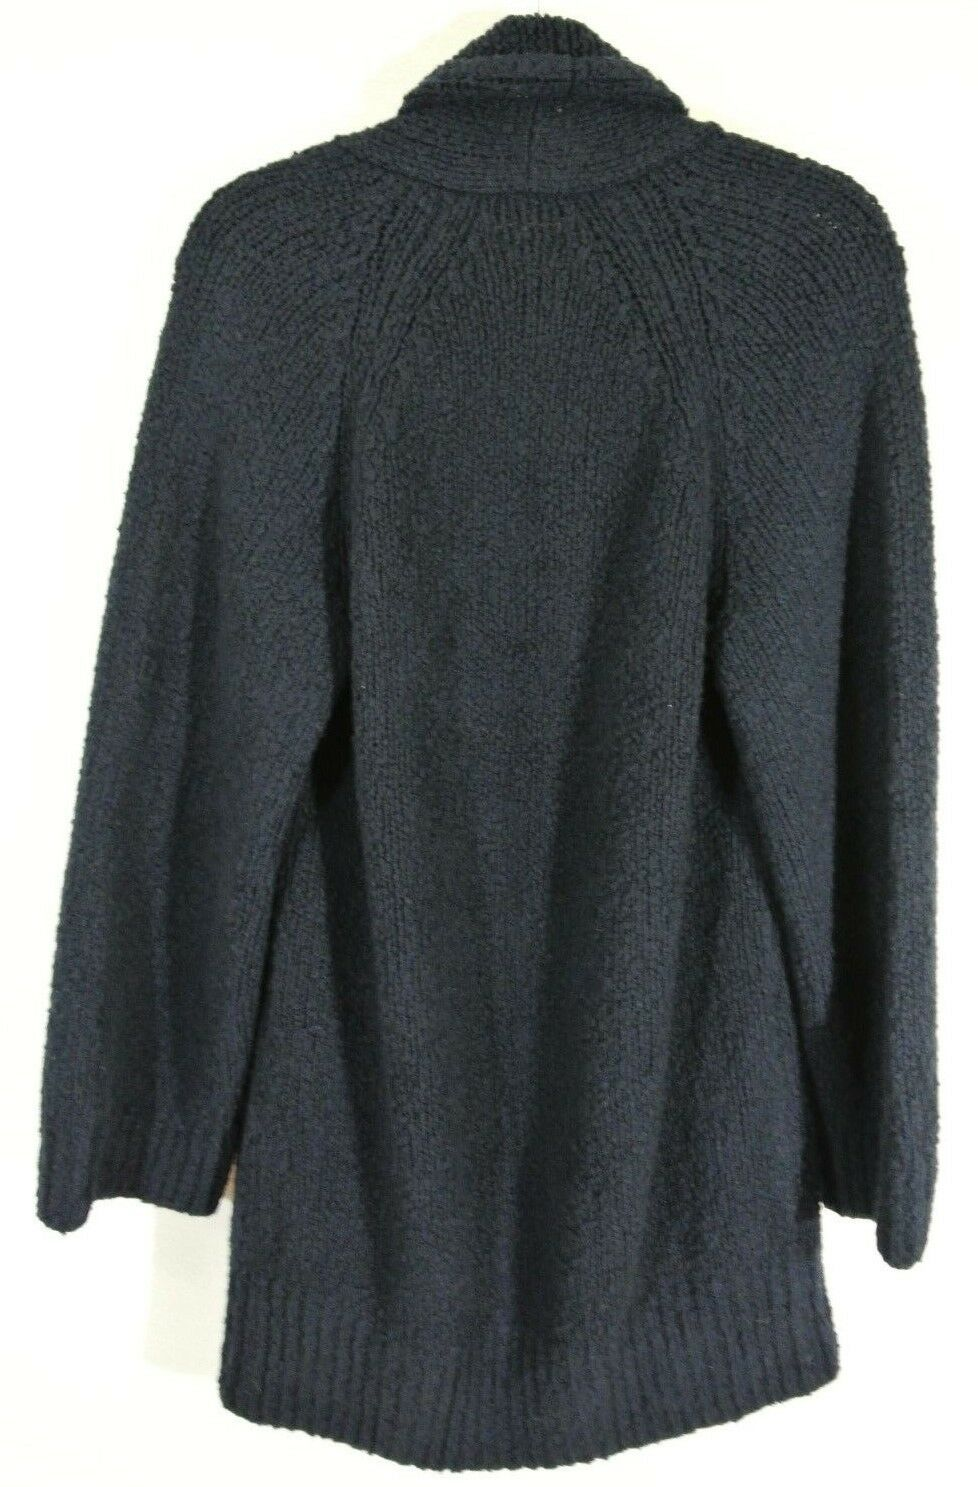 NEW Vince Textured Textured Textured Wool Cardigan in Navy - Size M aacab2